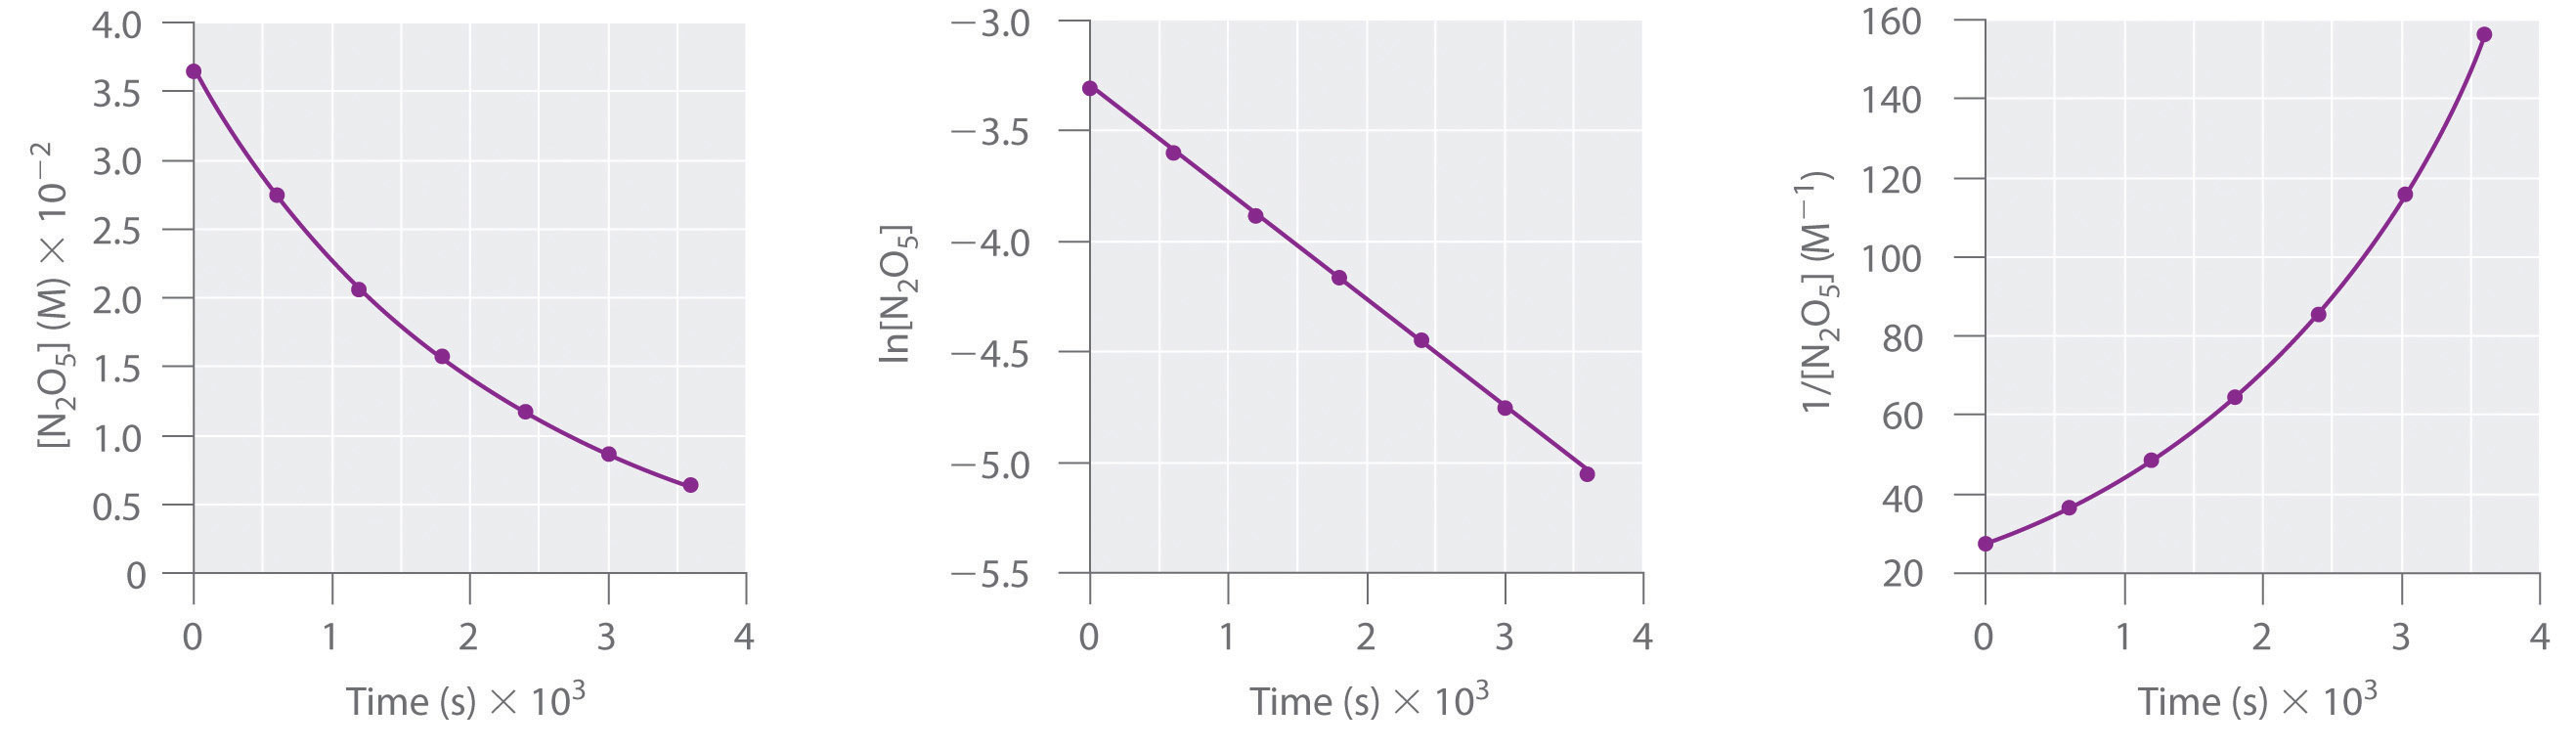 Using Graphs To Determine Rate Laws Rate Constants And Reaction Orders